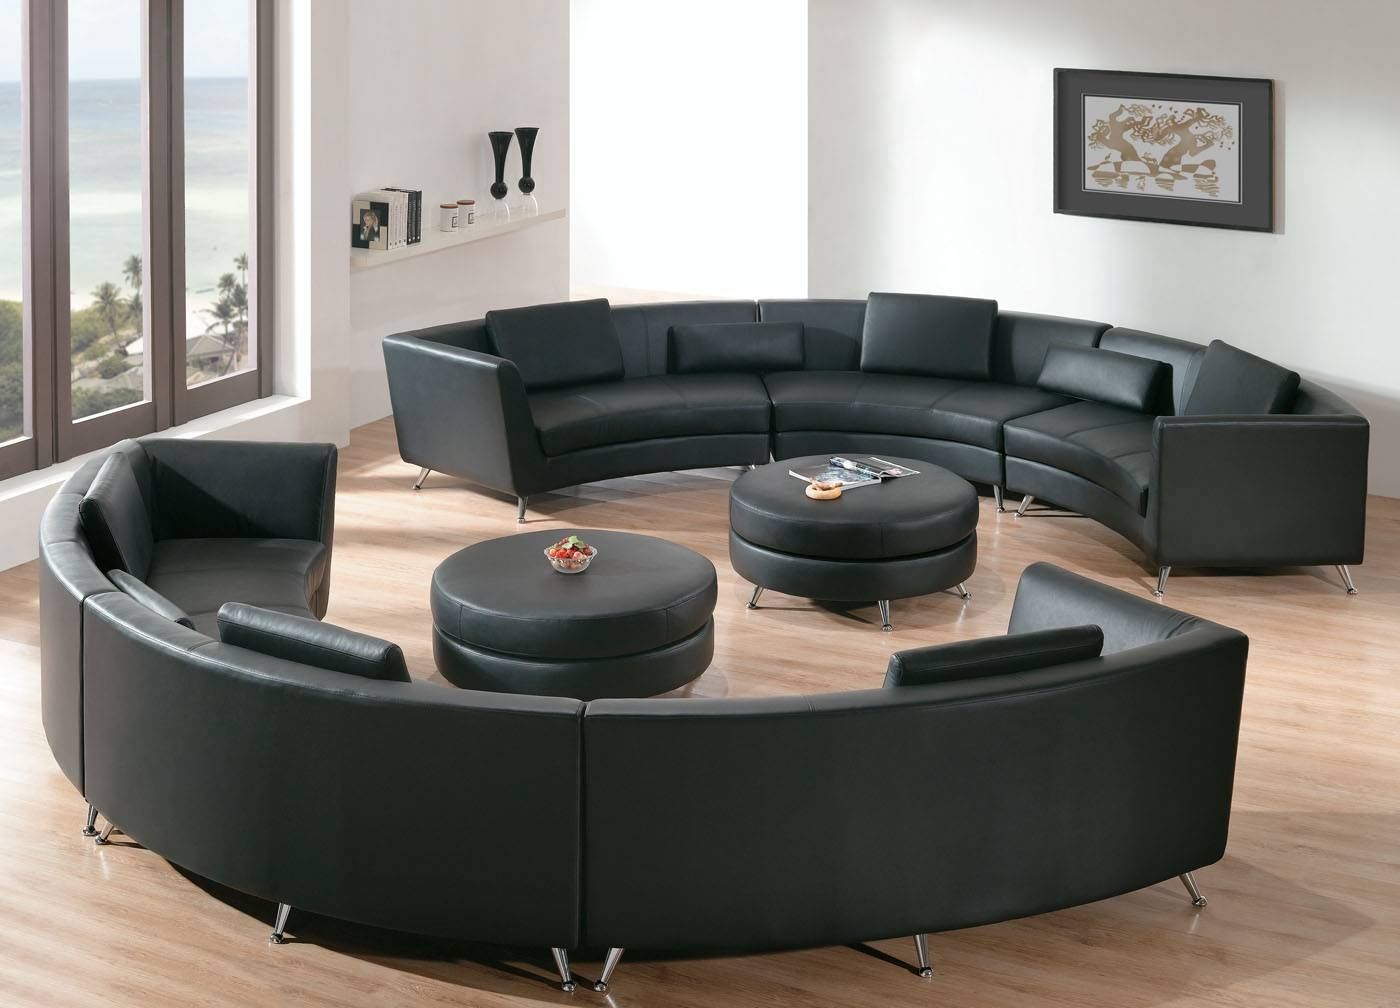 Sofas Center : Circle Sofa Chair Round Chaircircular Chairround intended for Circle Sofas (Image 20 of 25)